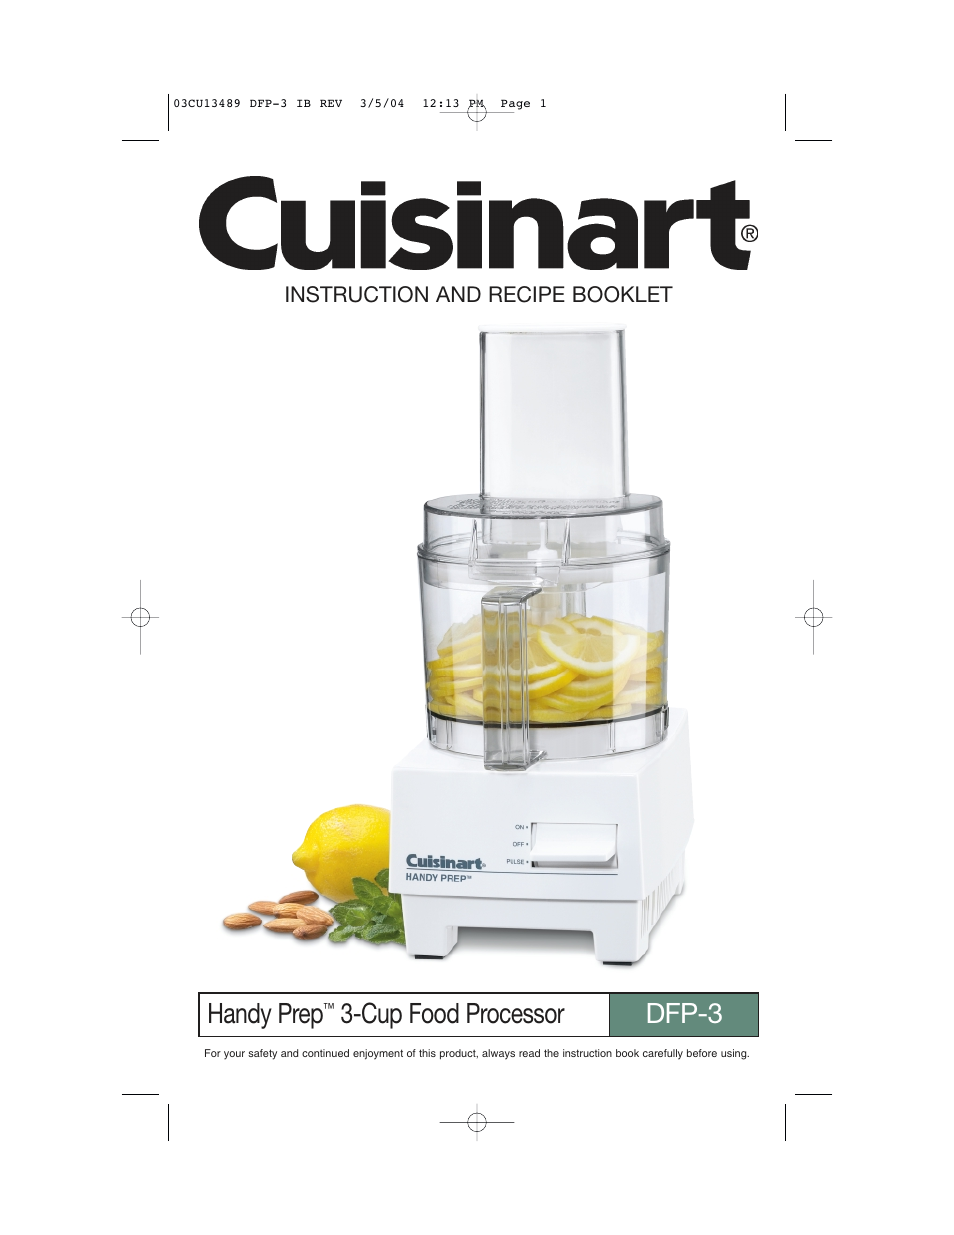 Cuisinart handy prep dfp 3 user manual 32 pages forumfinder Image collections